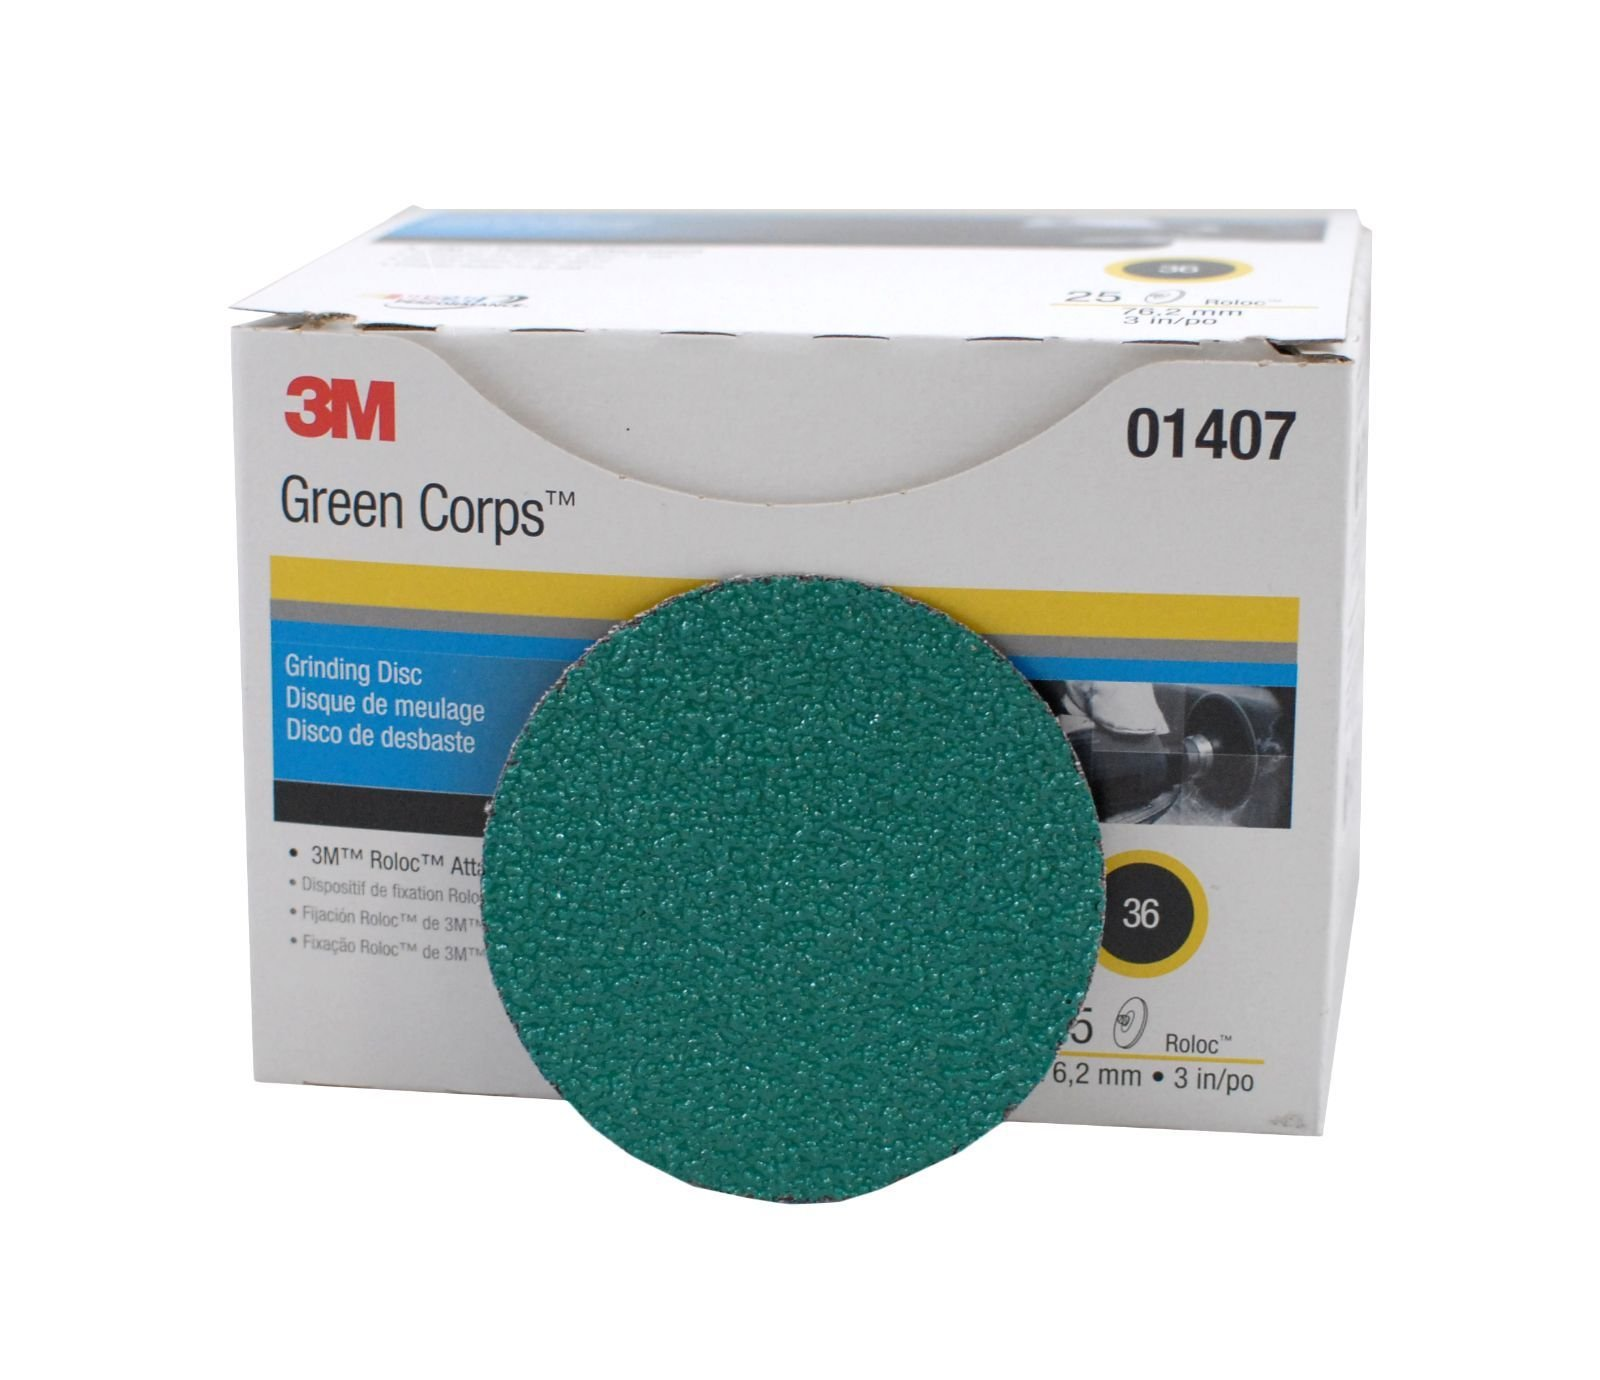 3'' Roloc 36 Grit Grinding Discs _ 25 Pk. Brown by 3M